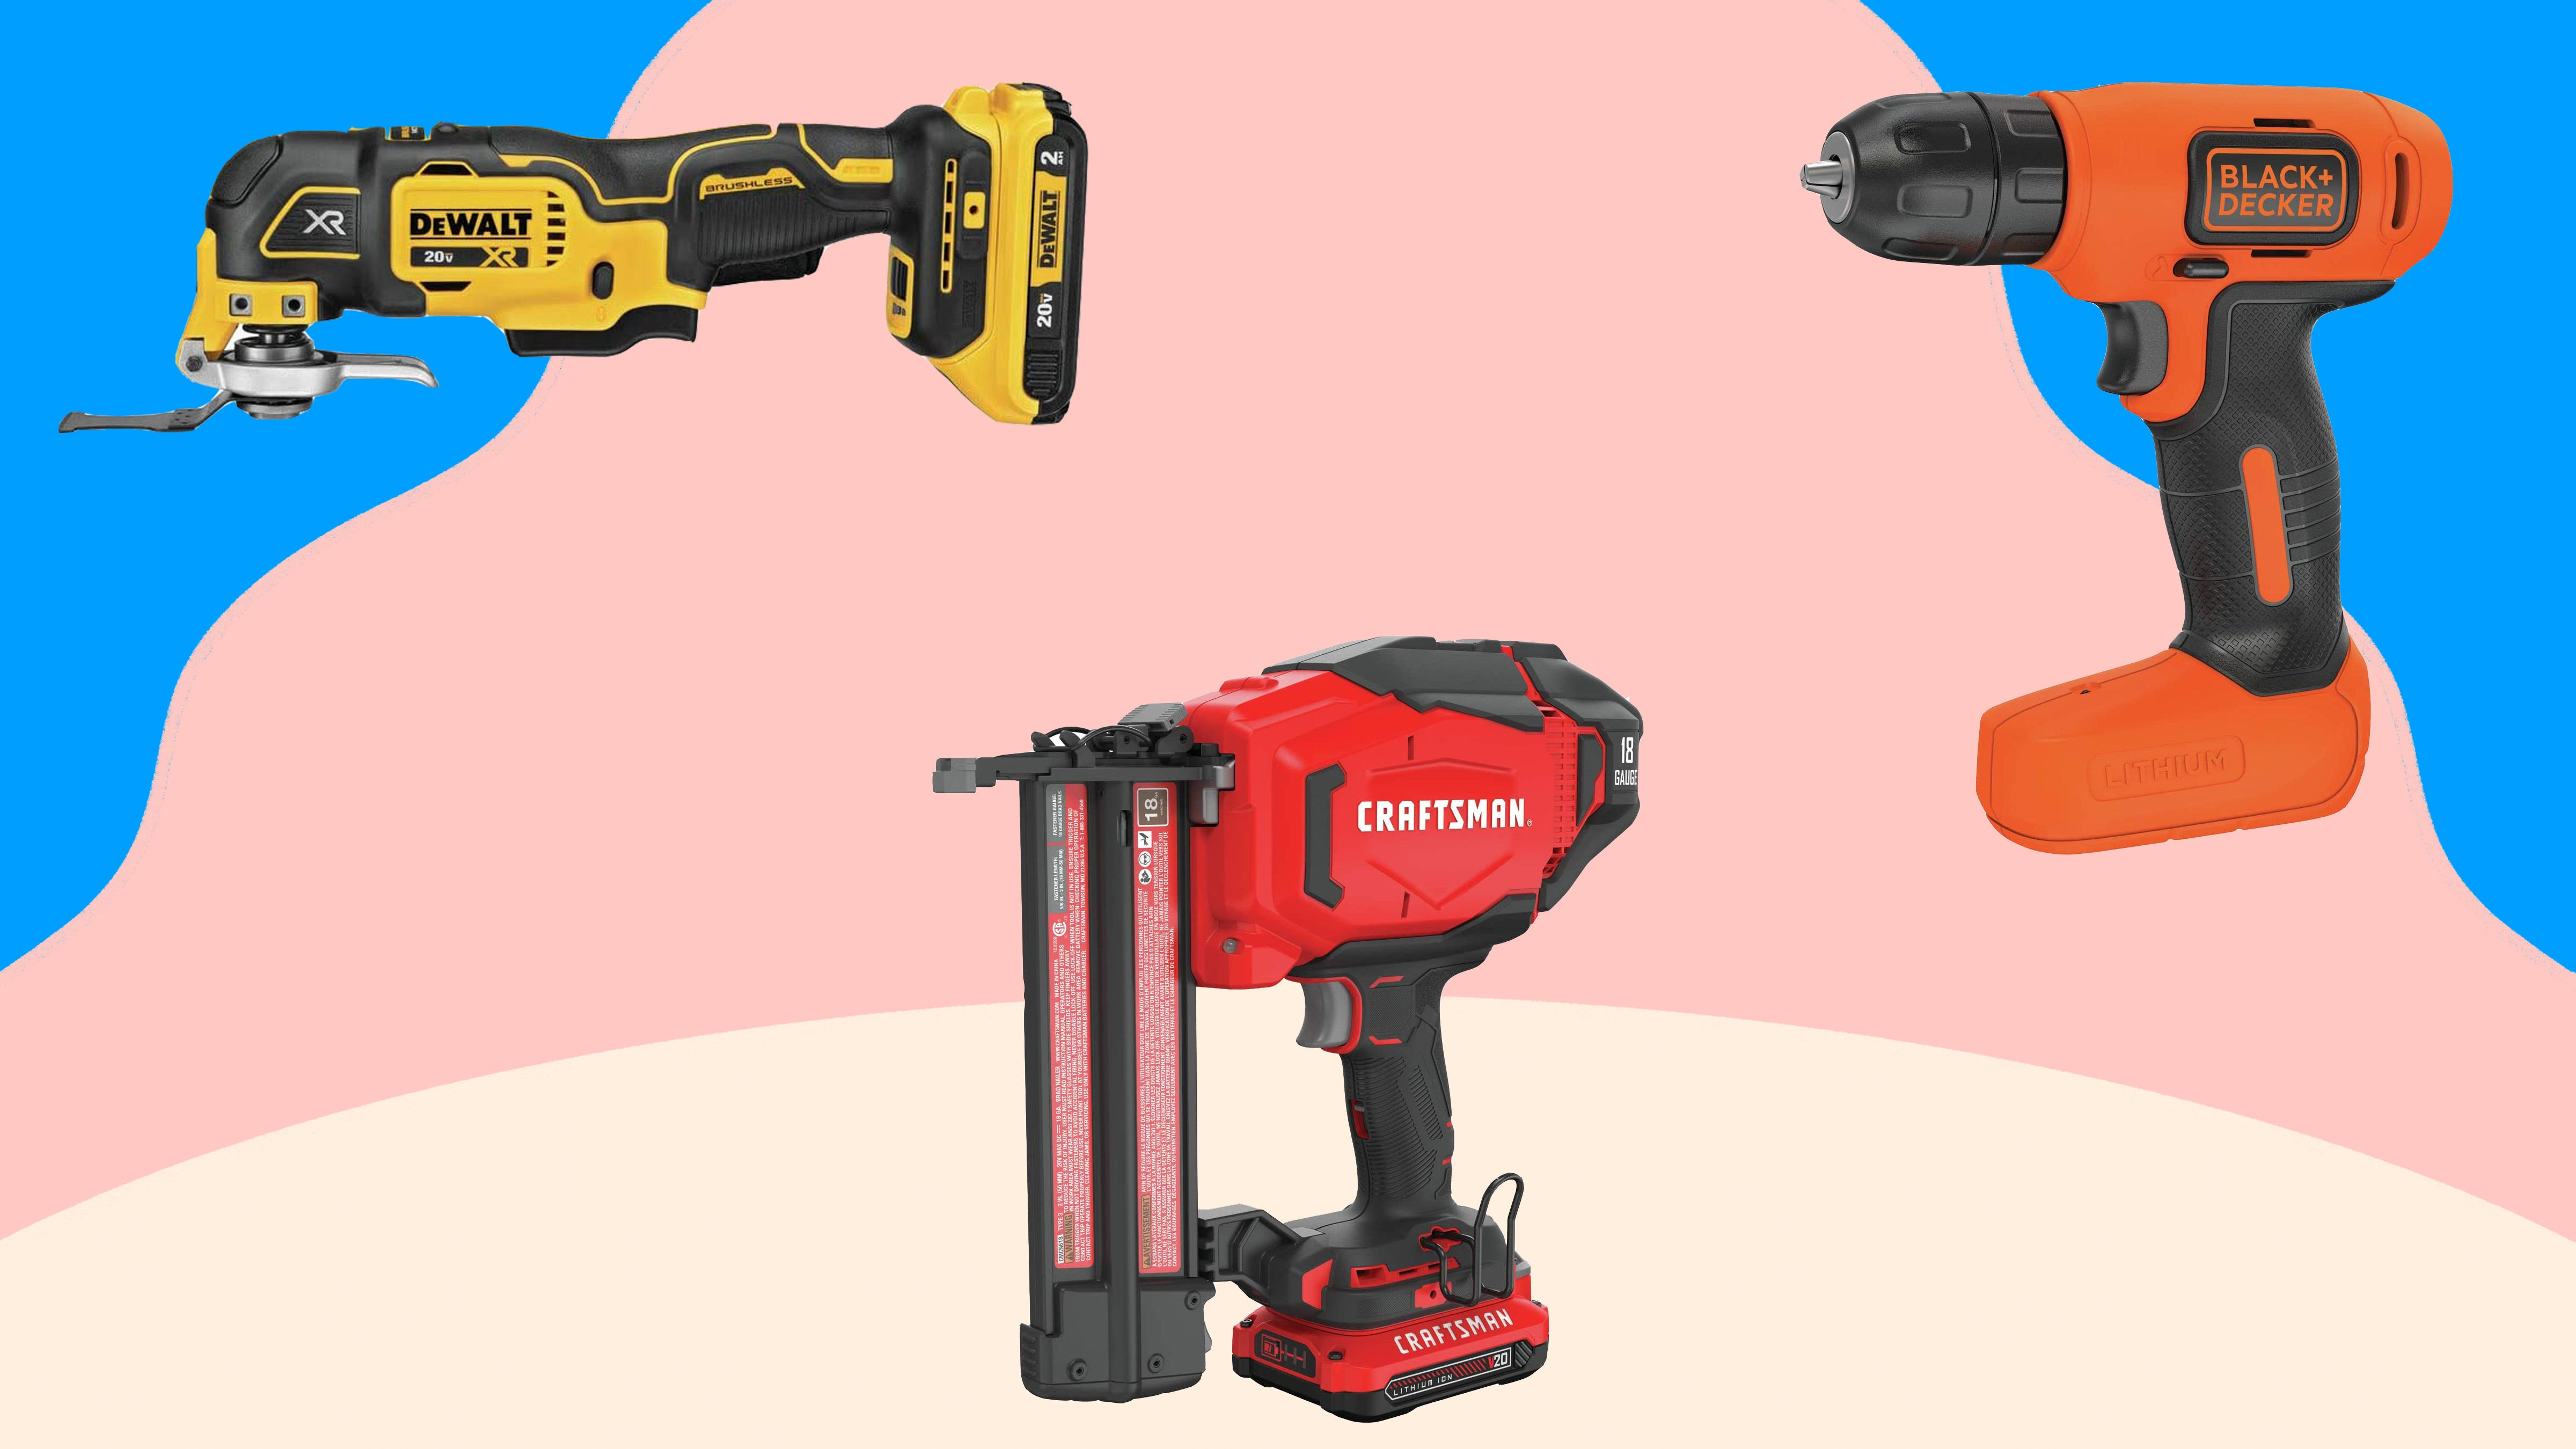 Shop Amazon savings on tools from Black and Decker, Craftsman and more